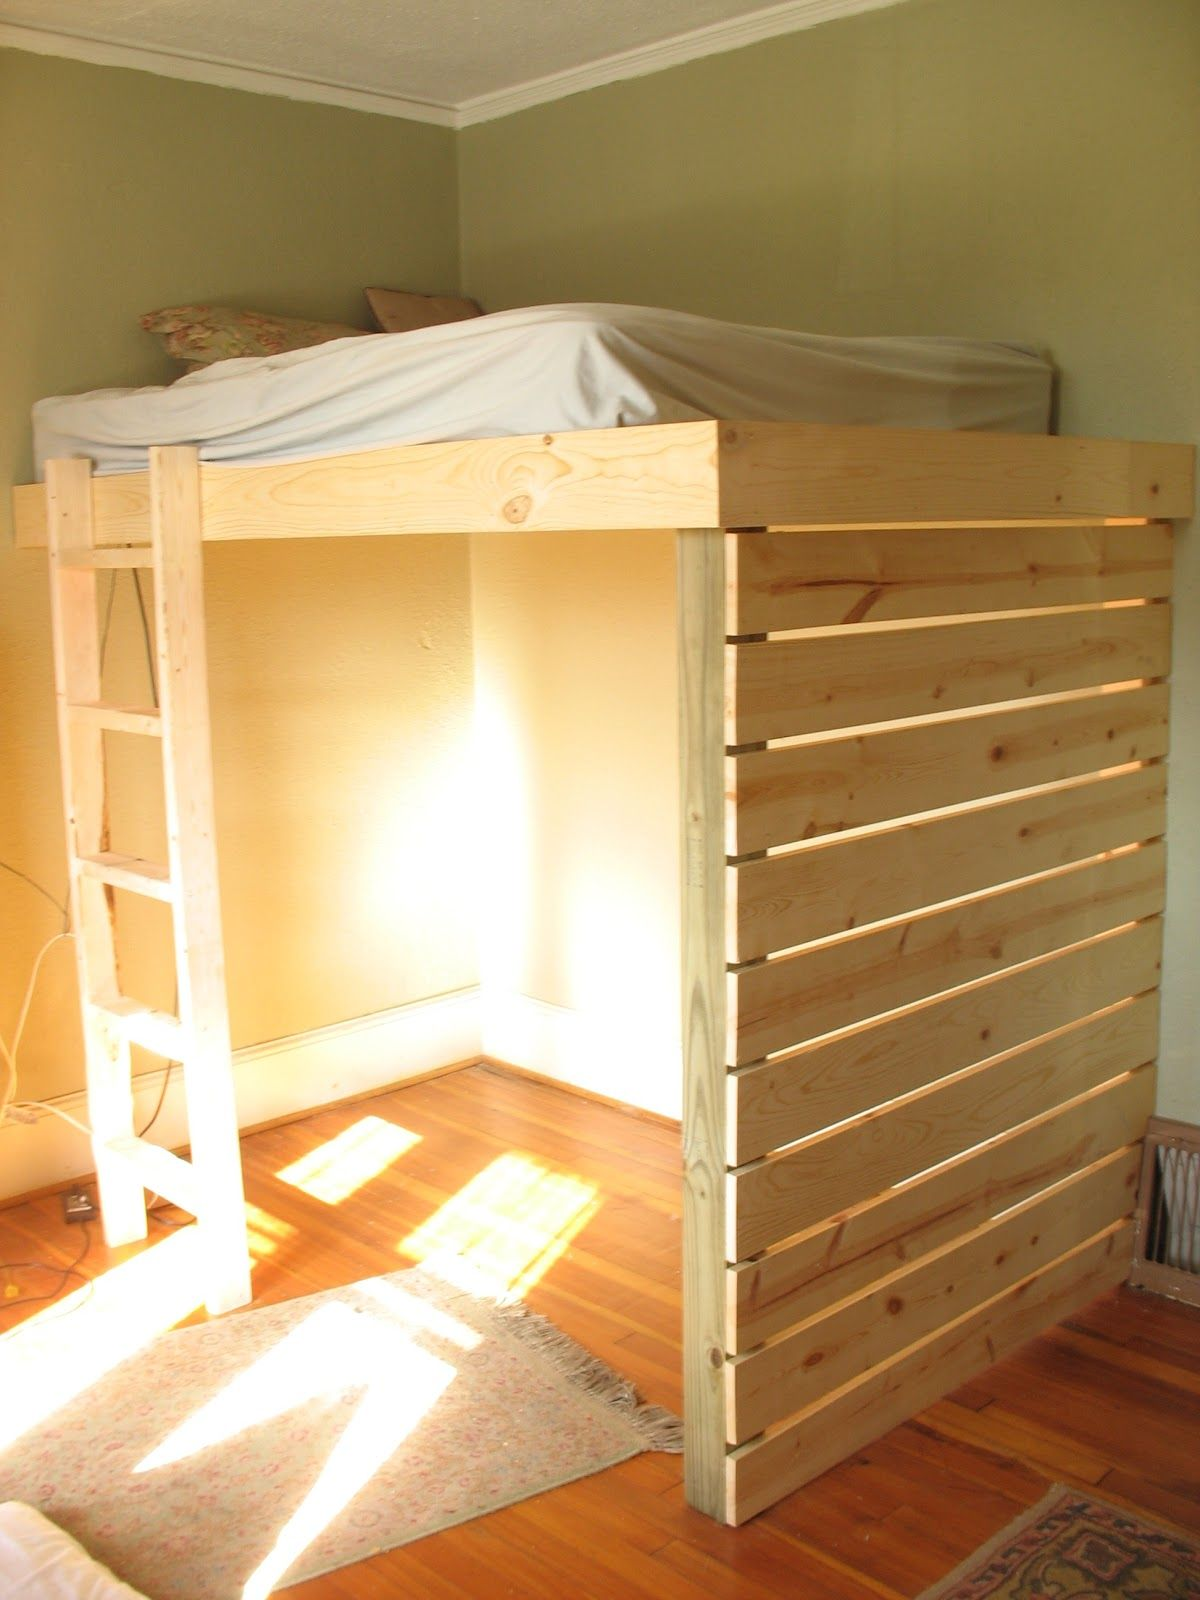 Ideas for space under loft bed  Google Image Result for bpspotpuVeCNTZM